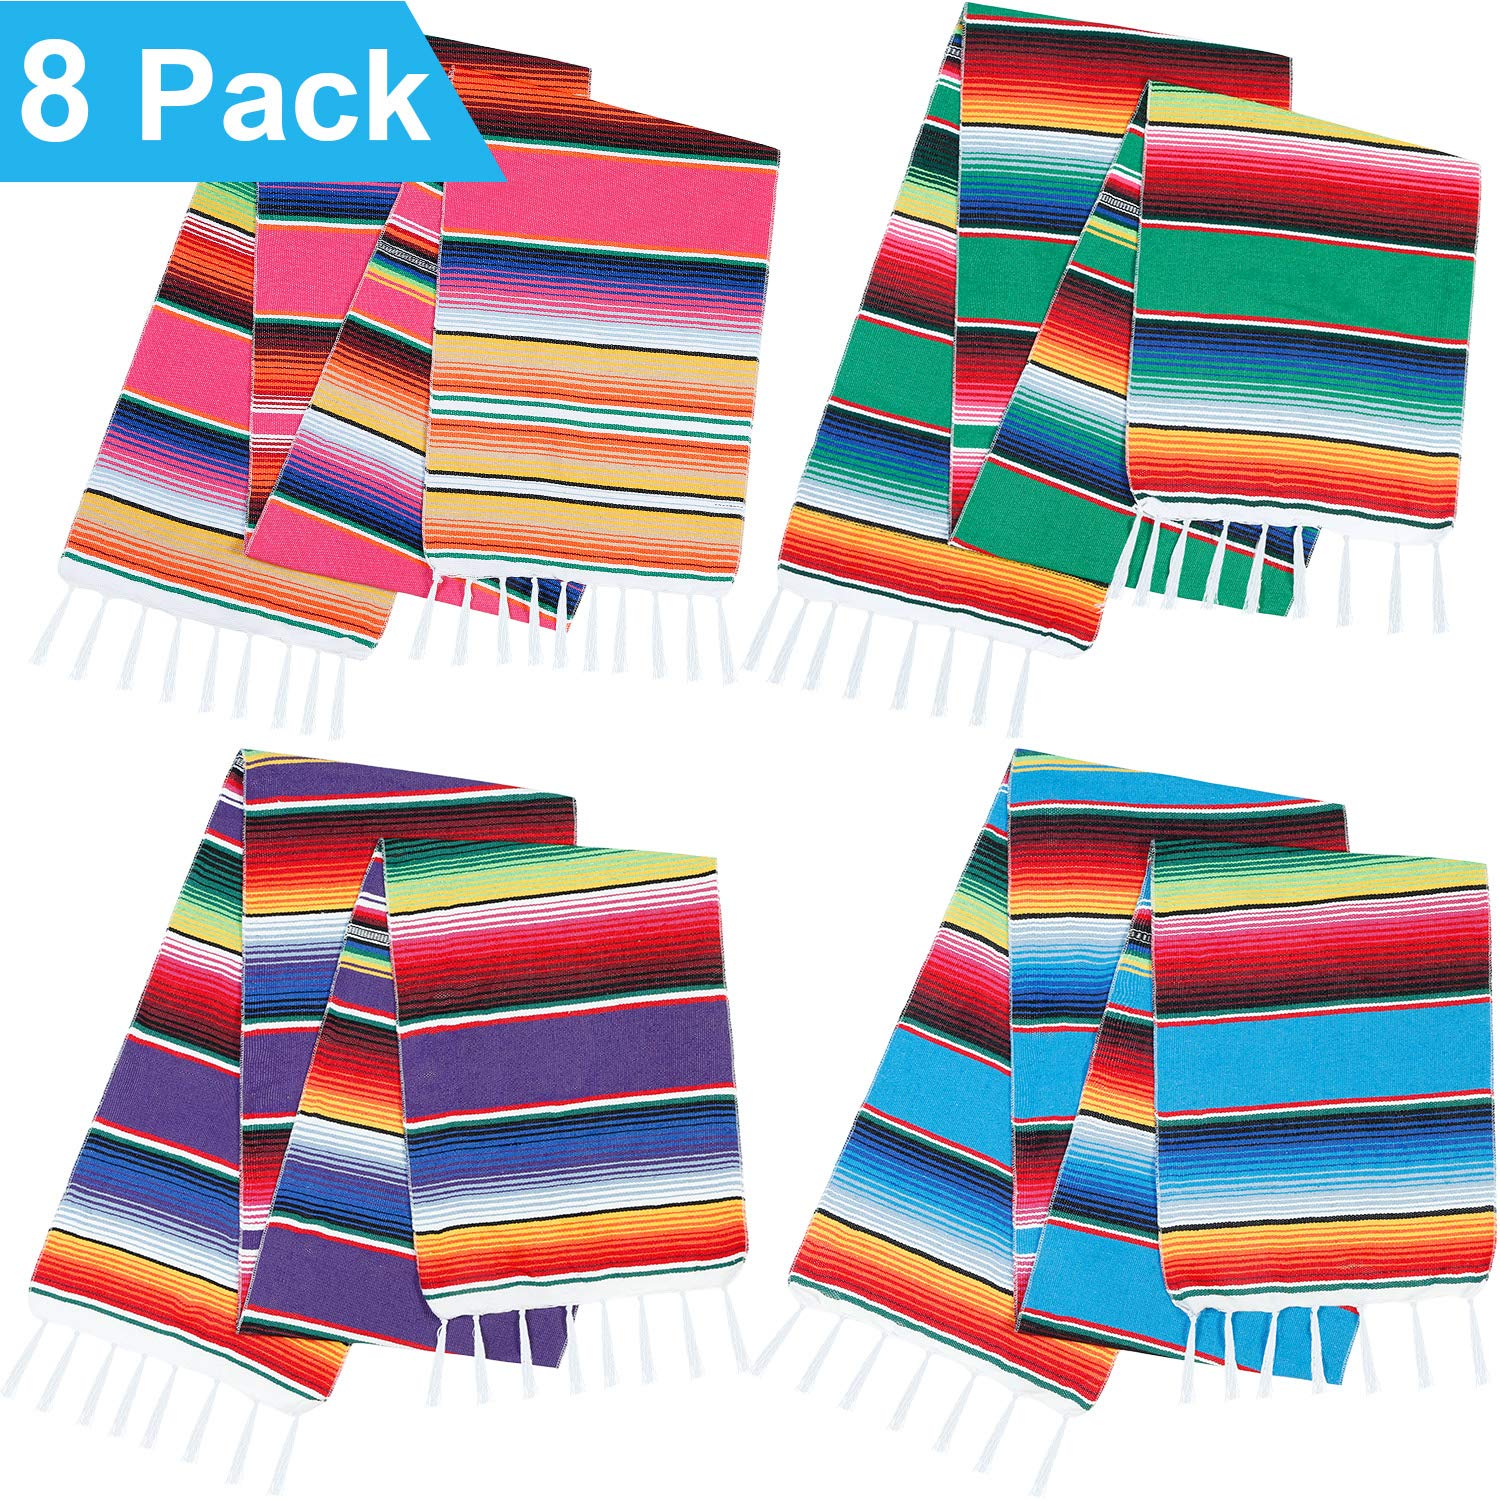 Zhanmai 8 Pieces Mexican Serape Table Runners Serape Mexican Table Blanket Fringe Cotton Table Runner for Outdoor Picnics Dining Wedding Party Decorations by Zhanmai